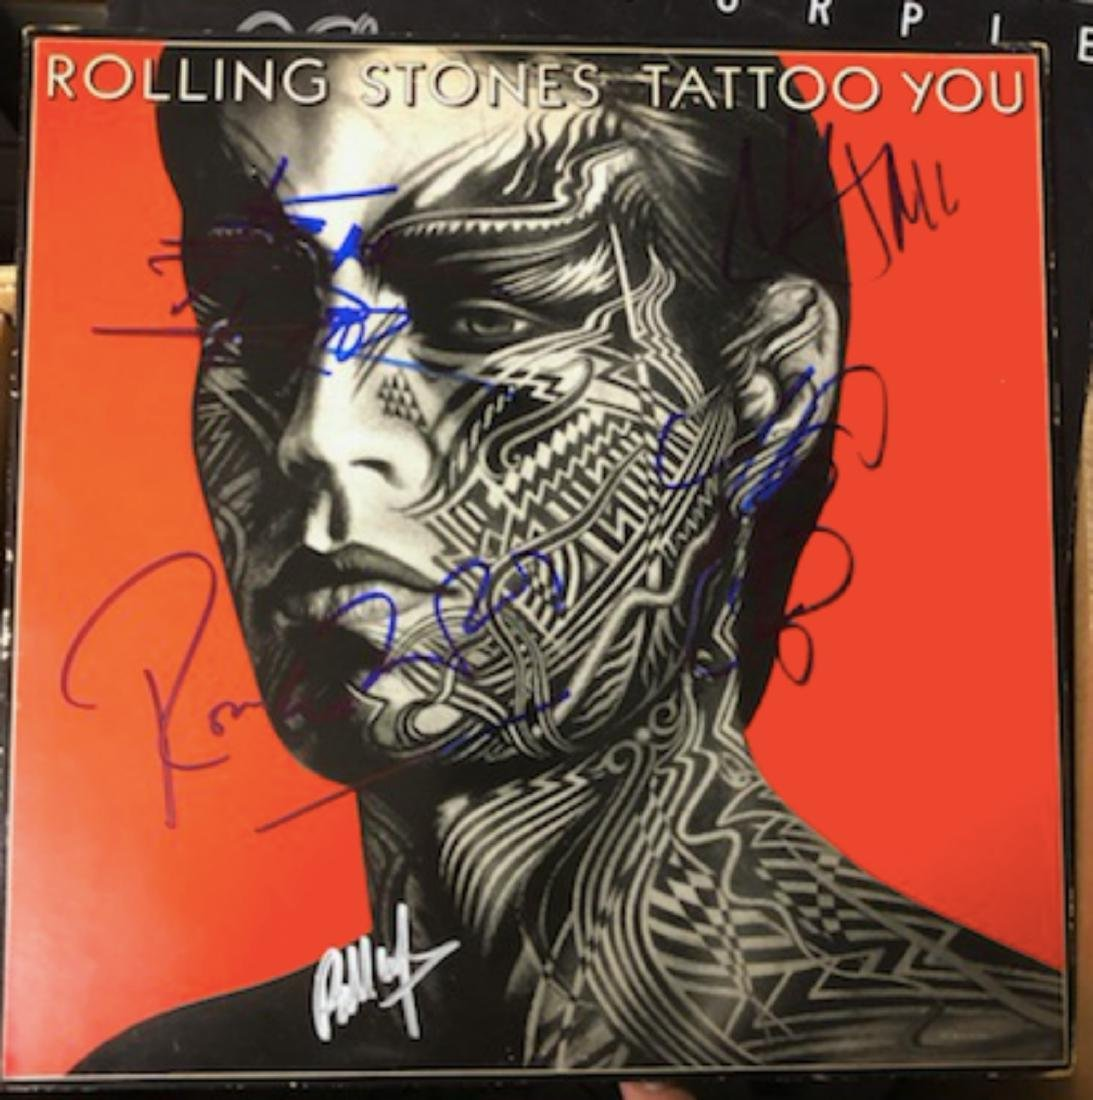 Signed Rolling Stones Tattoo You